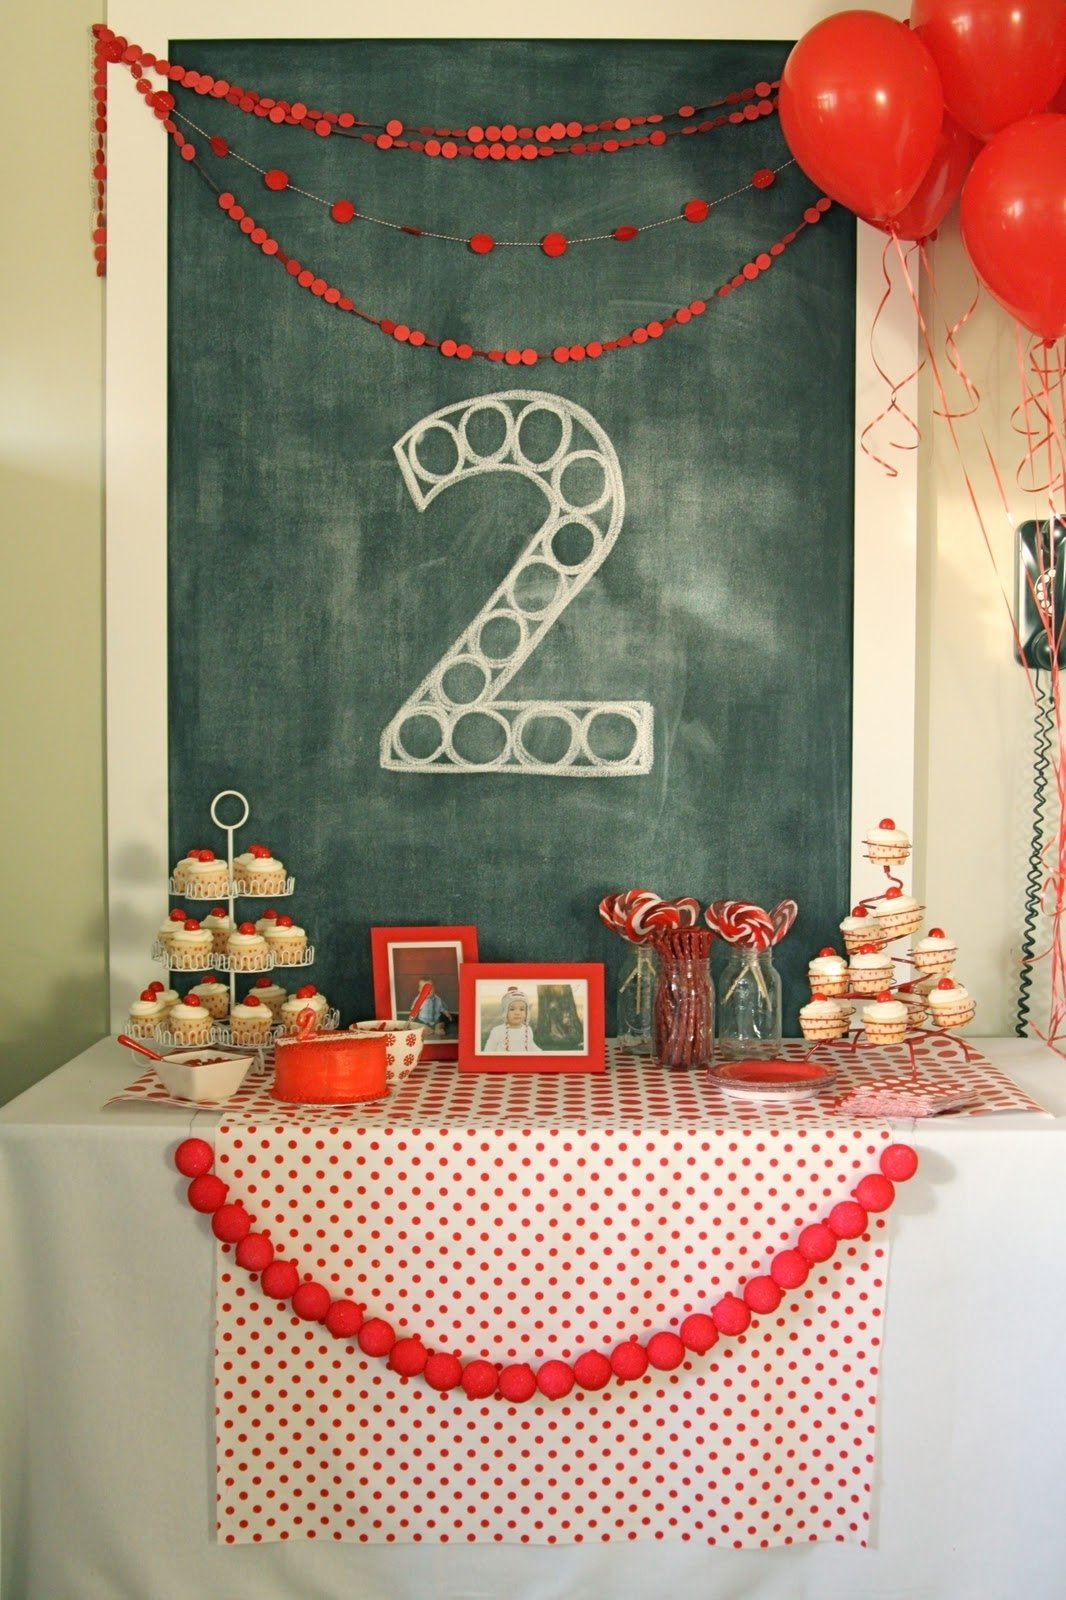 10 Great 2 Year Old Boy Birthday Party Ideas red ball party levis second birthday the macs 1